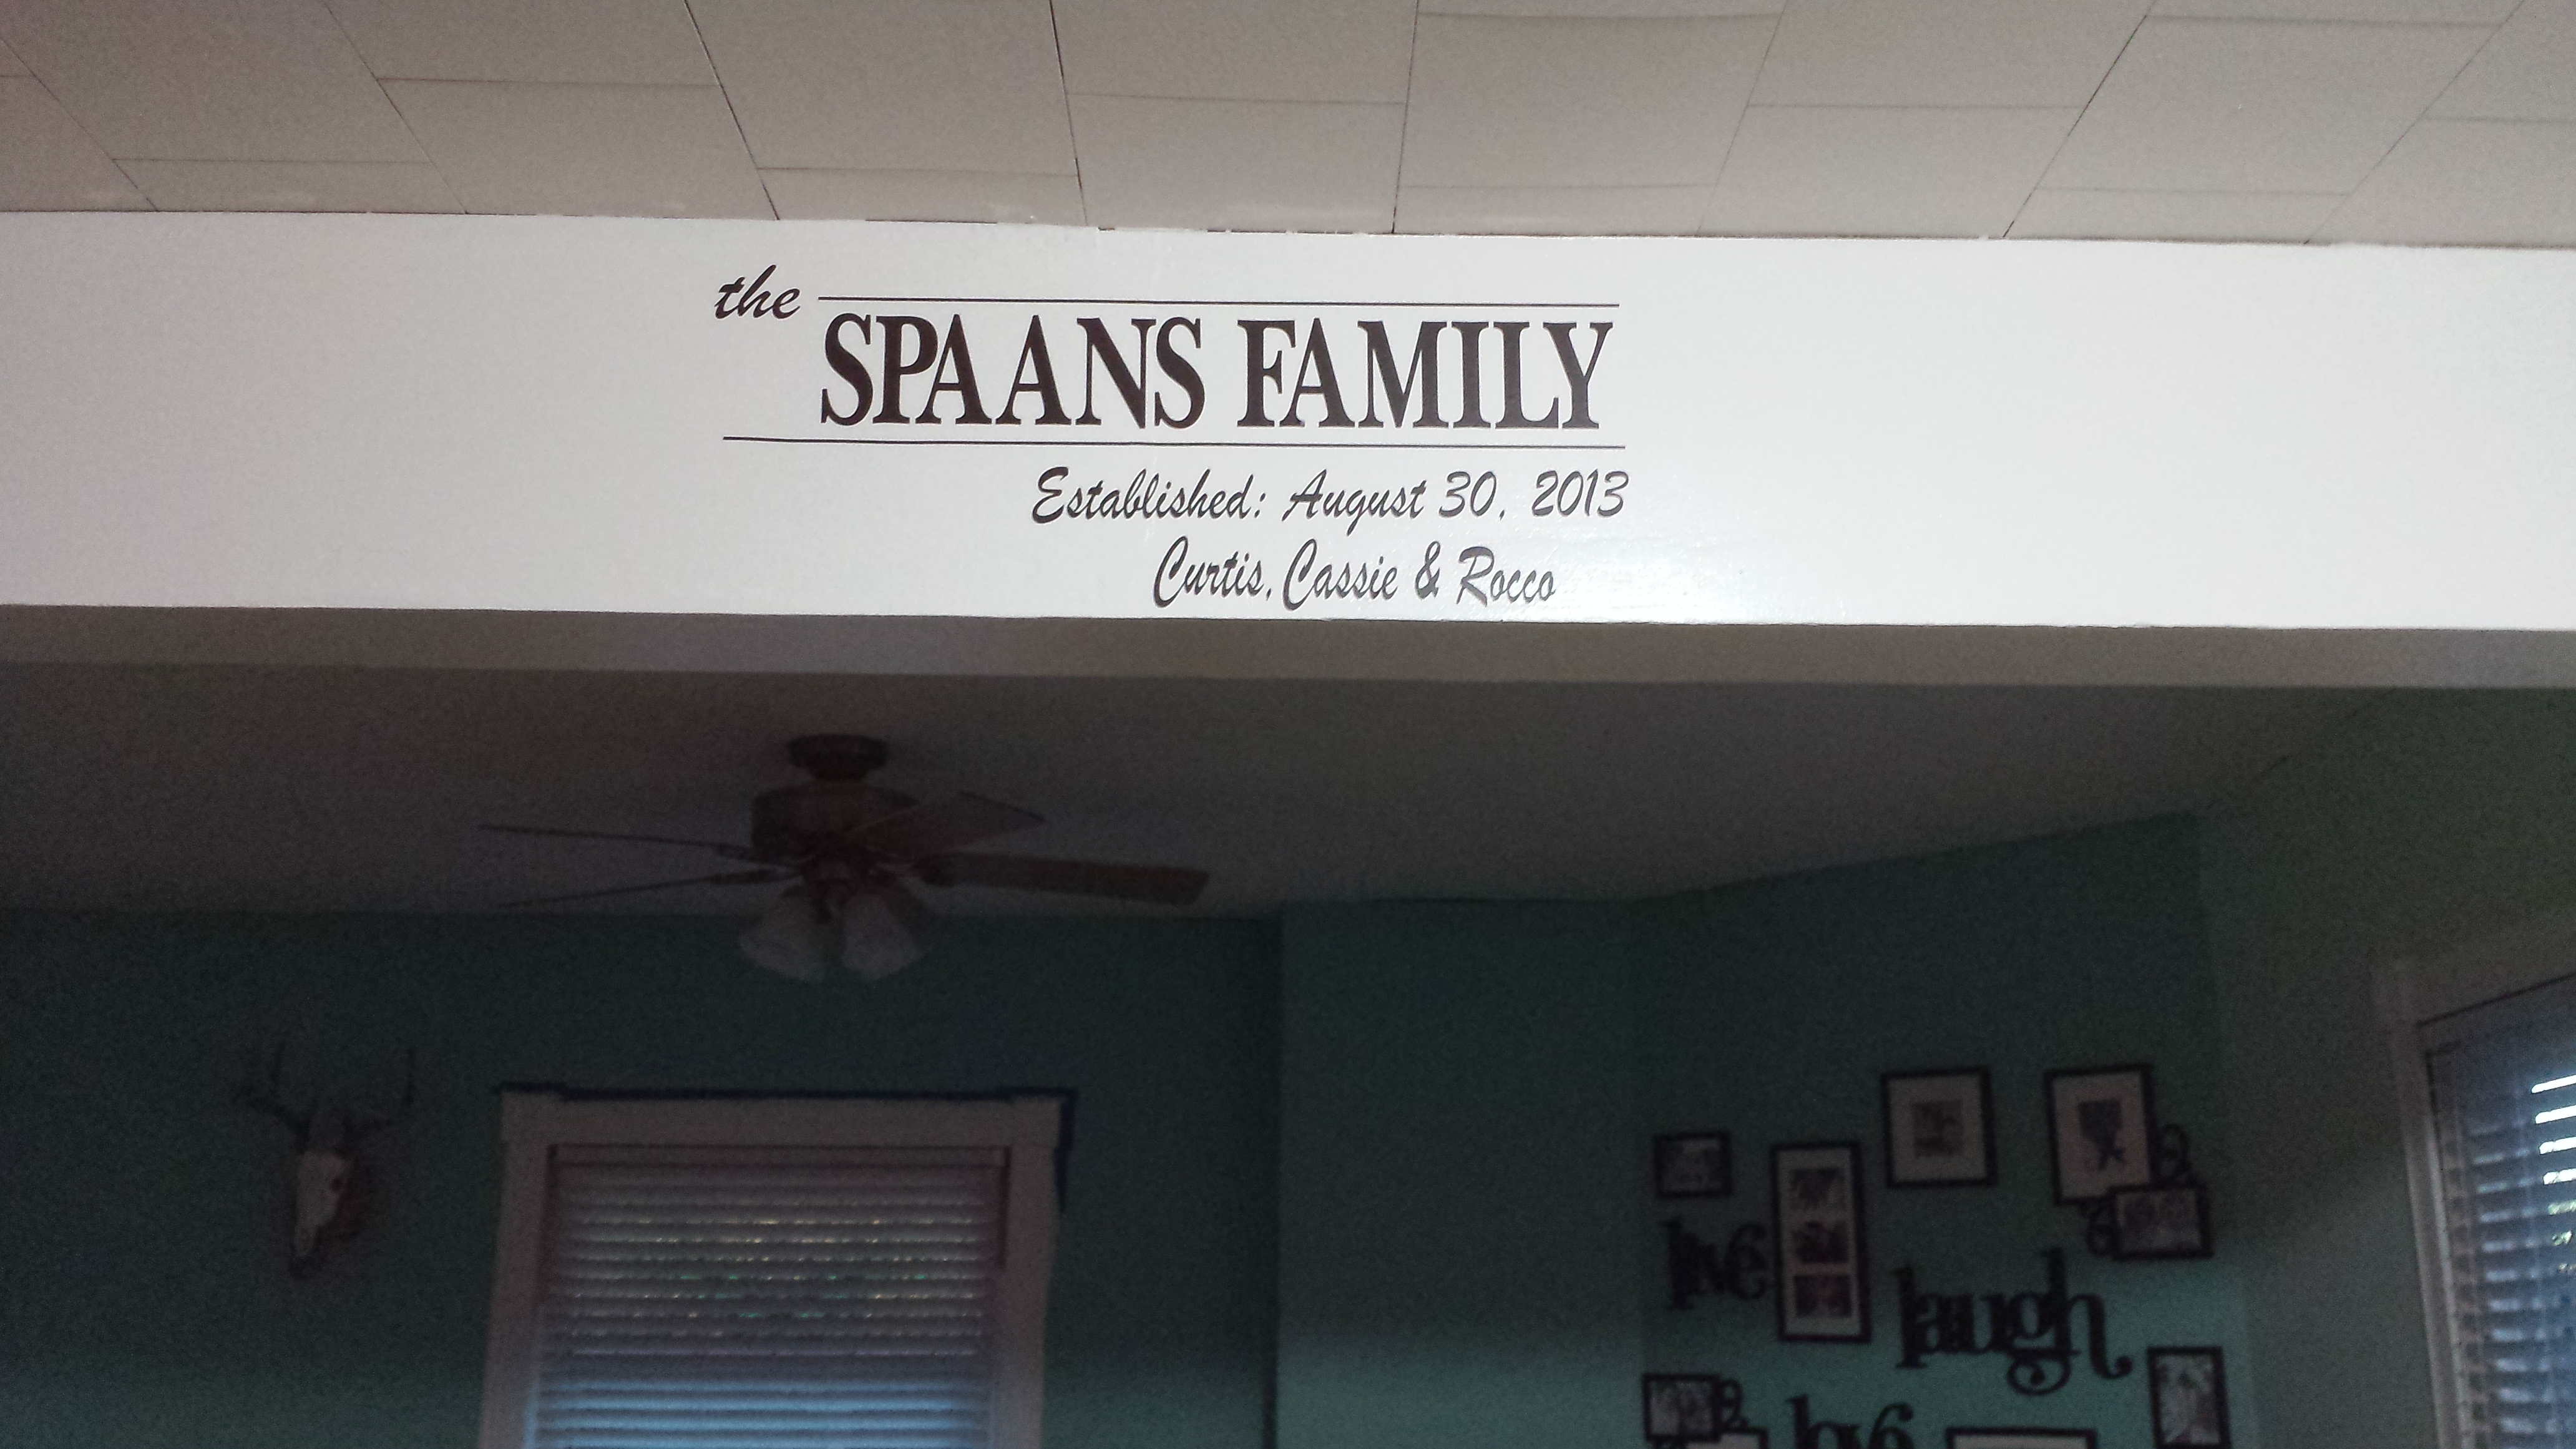 Family Name Established Date Personalized Wall Sticker